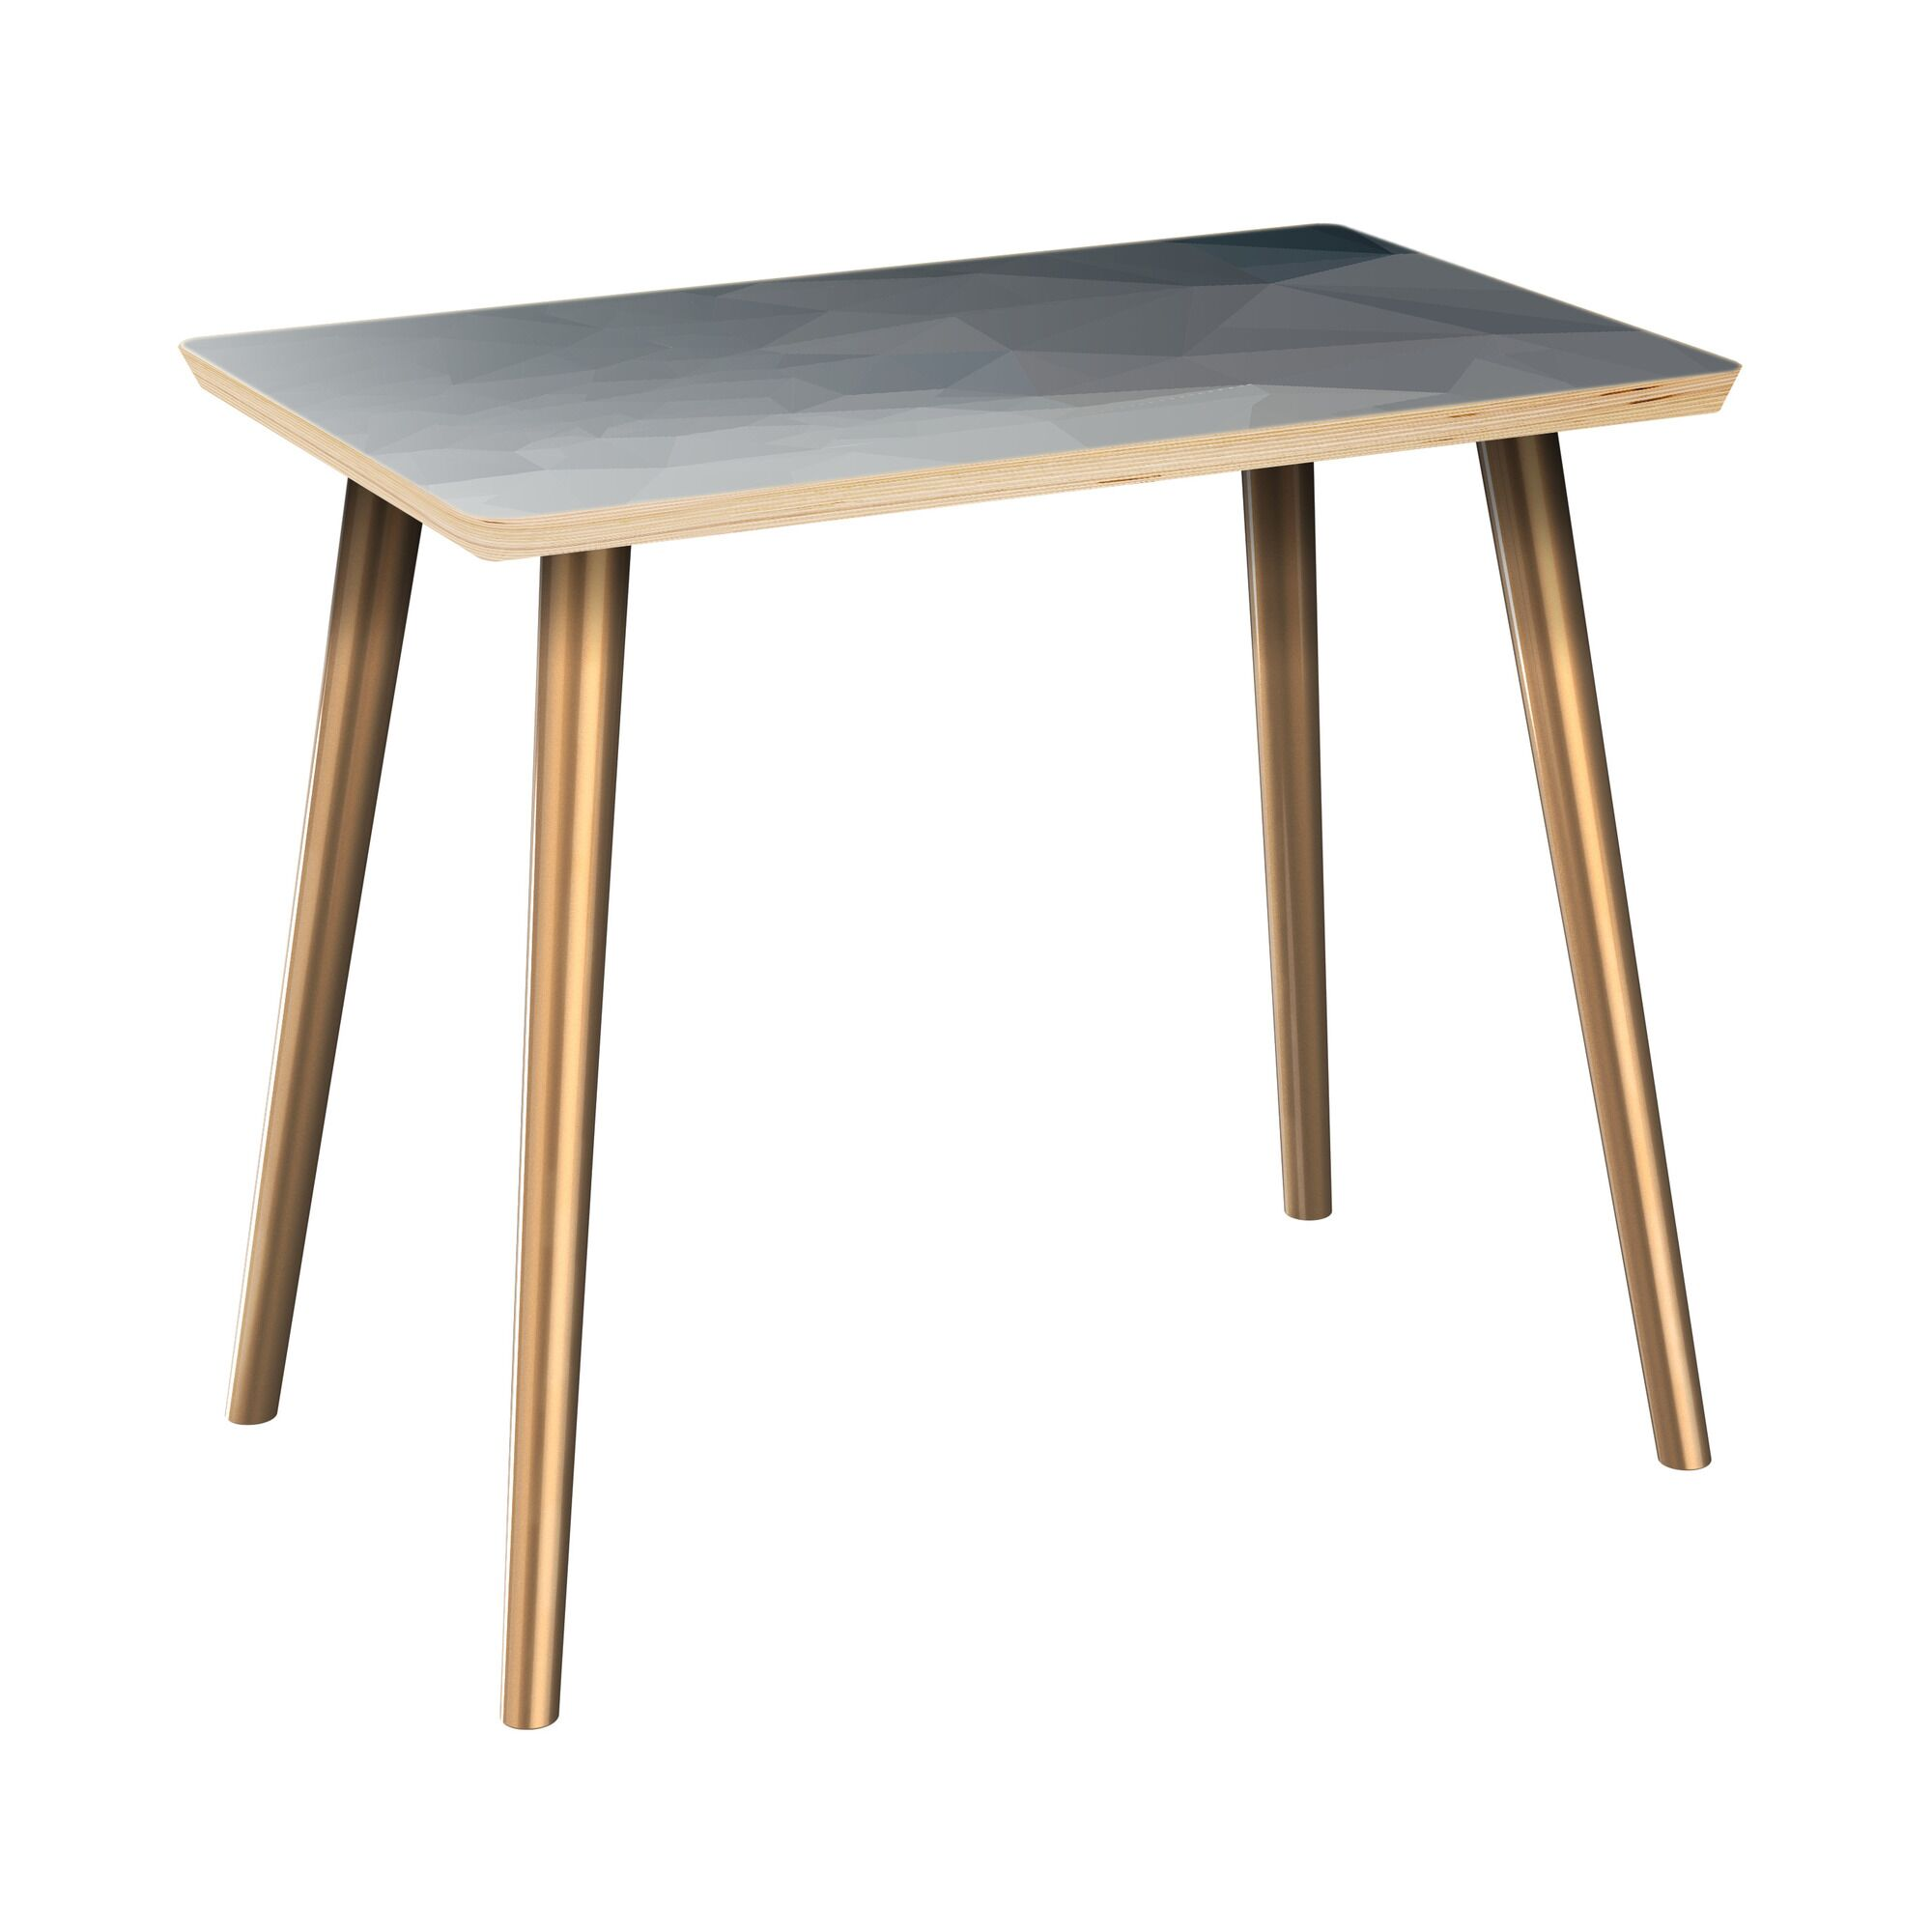 Lake Park End Table Table Top Boarder Color: Natural, Table Base Color: Brass, Table Top Color: Blue